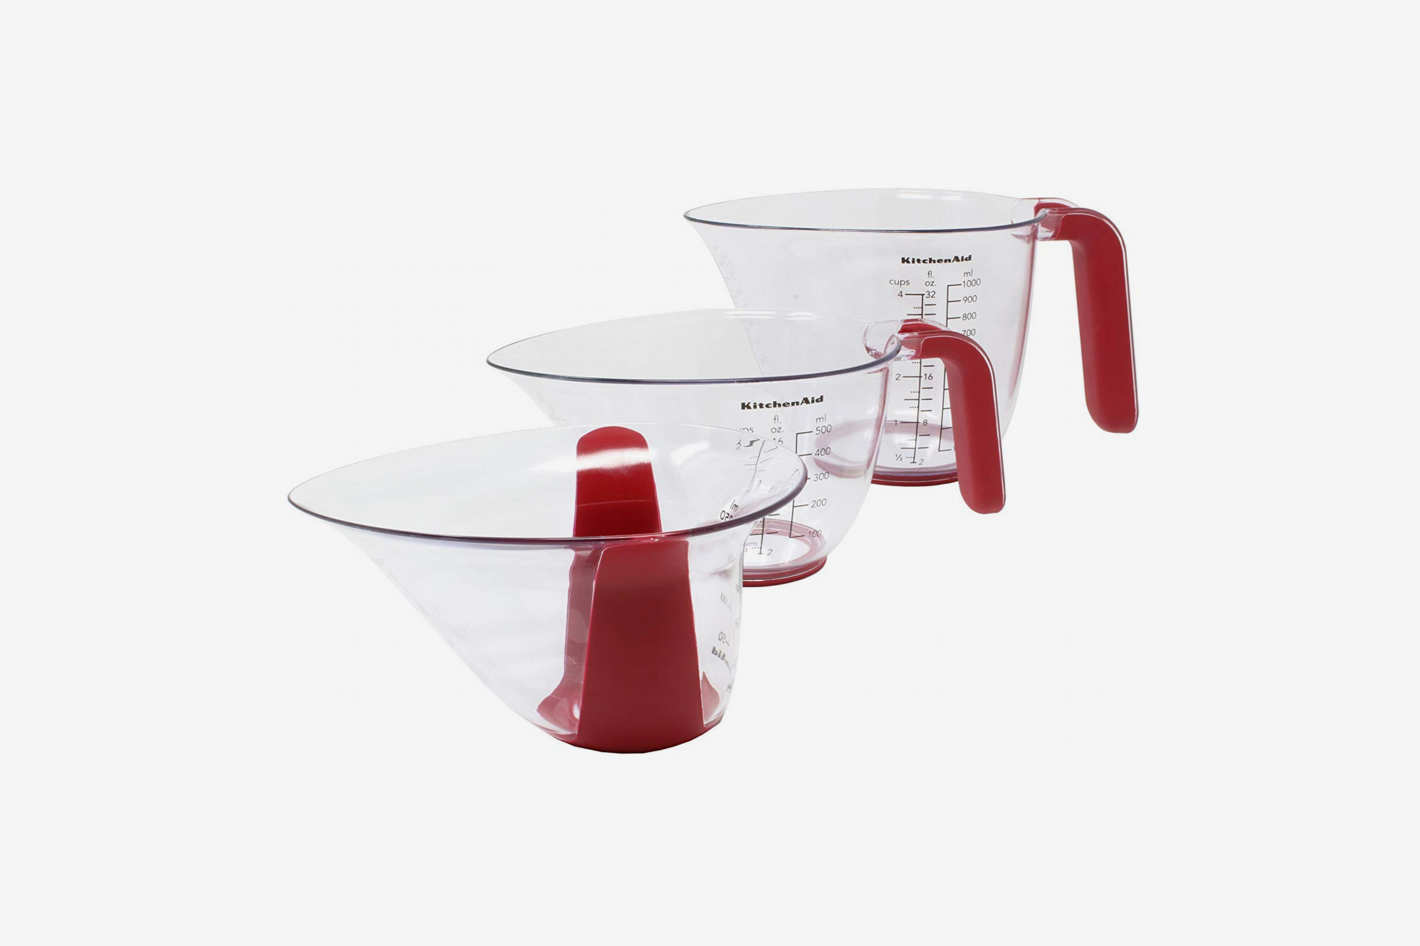 KitchenAid Gourmet Set of 3 Plastic Measuring Cups, Red